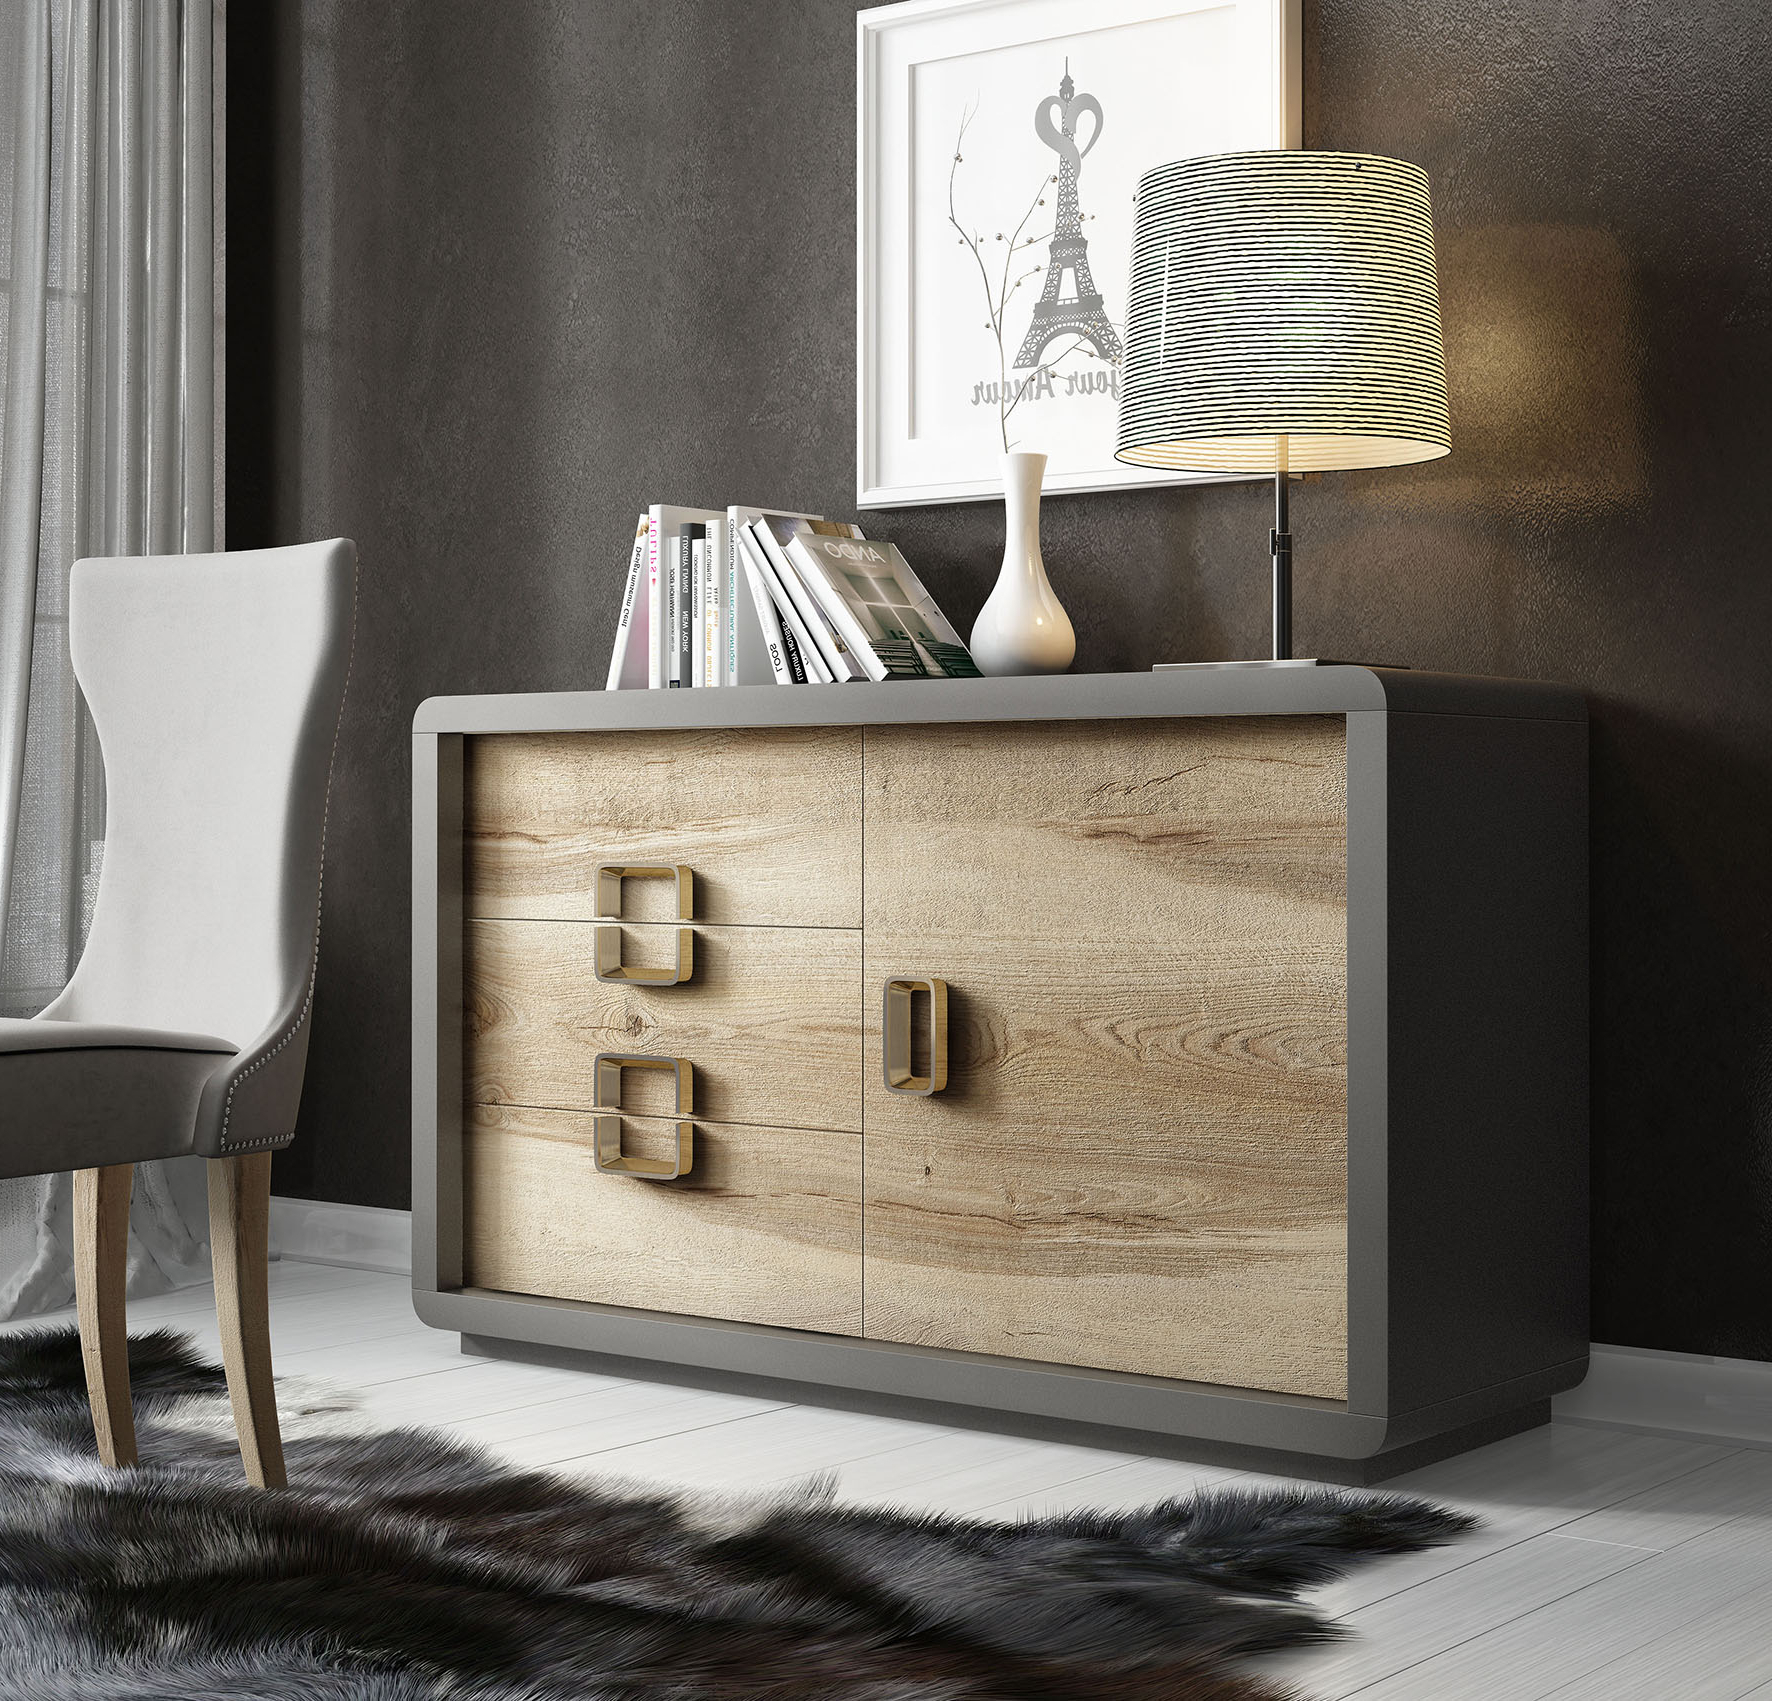 Aii.27 Sideboard, Franco Azkary Ii Sideboards, Spain, Brands Within Current Ebenezer (View 11 of 20)